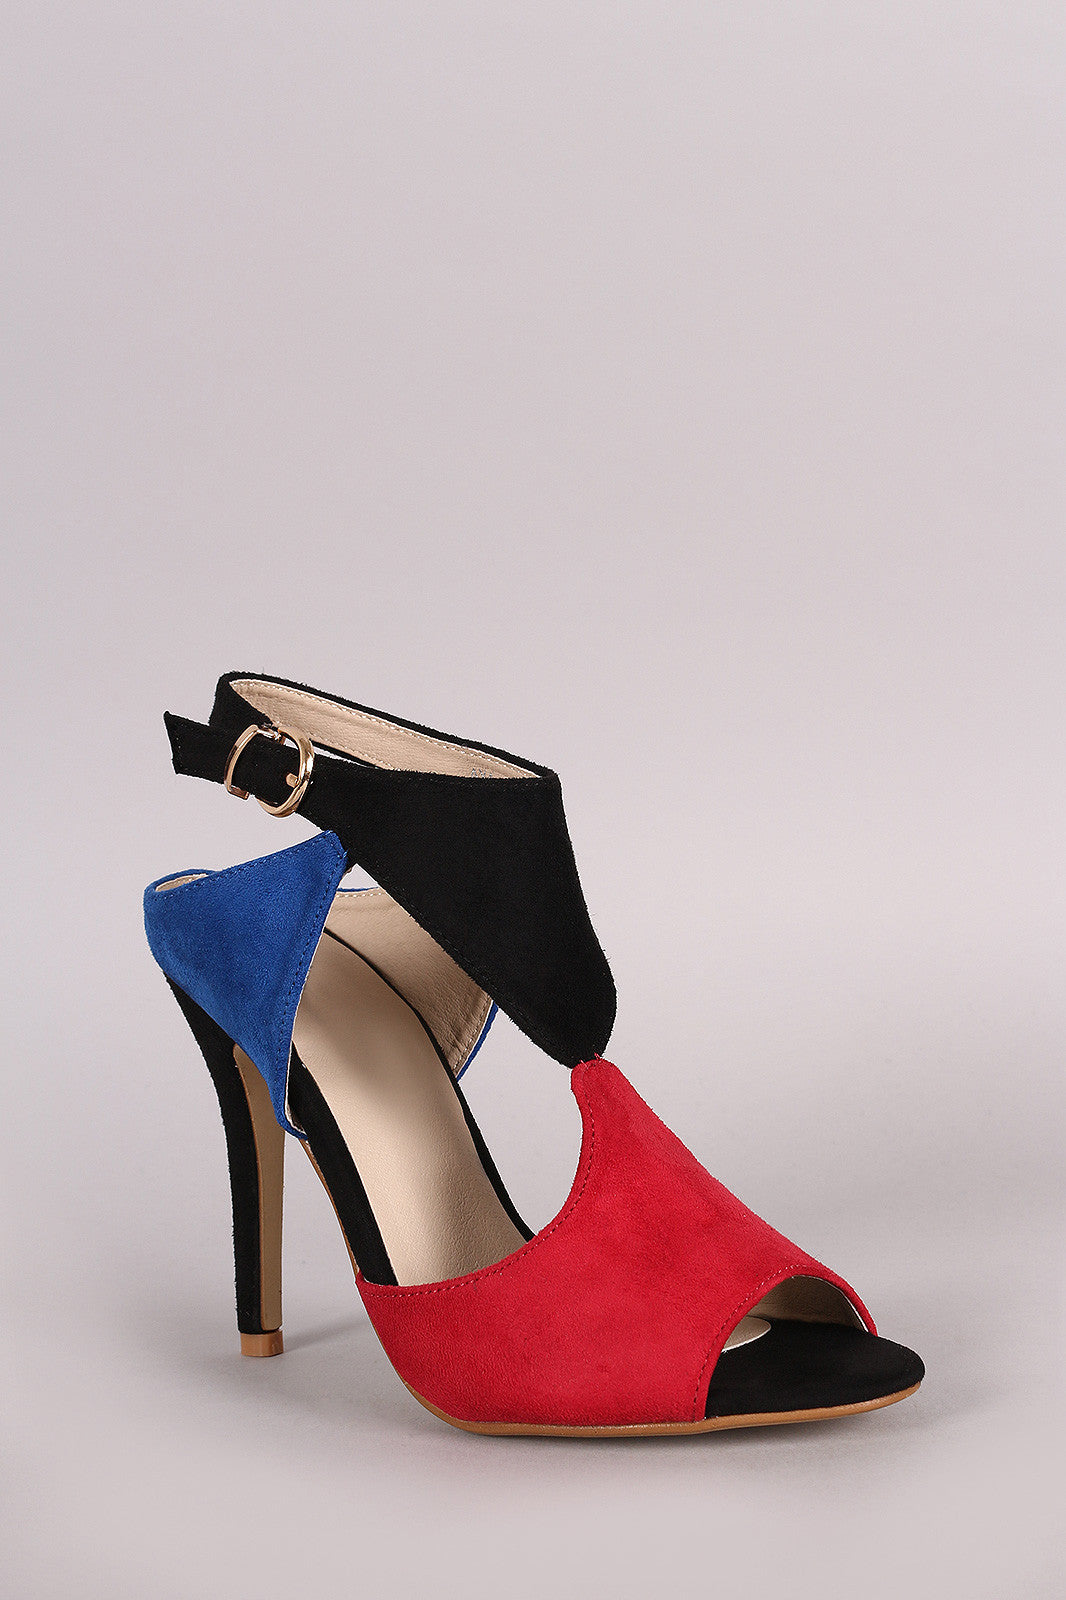 Cutout Block Color Peep Toe Stiletto Heel - Thick 'N' Curvy Shop - 5